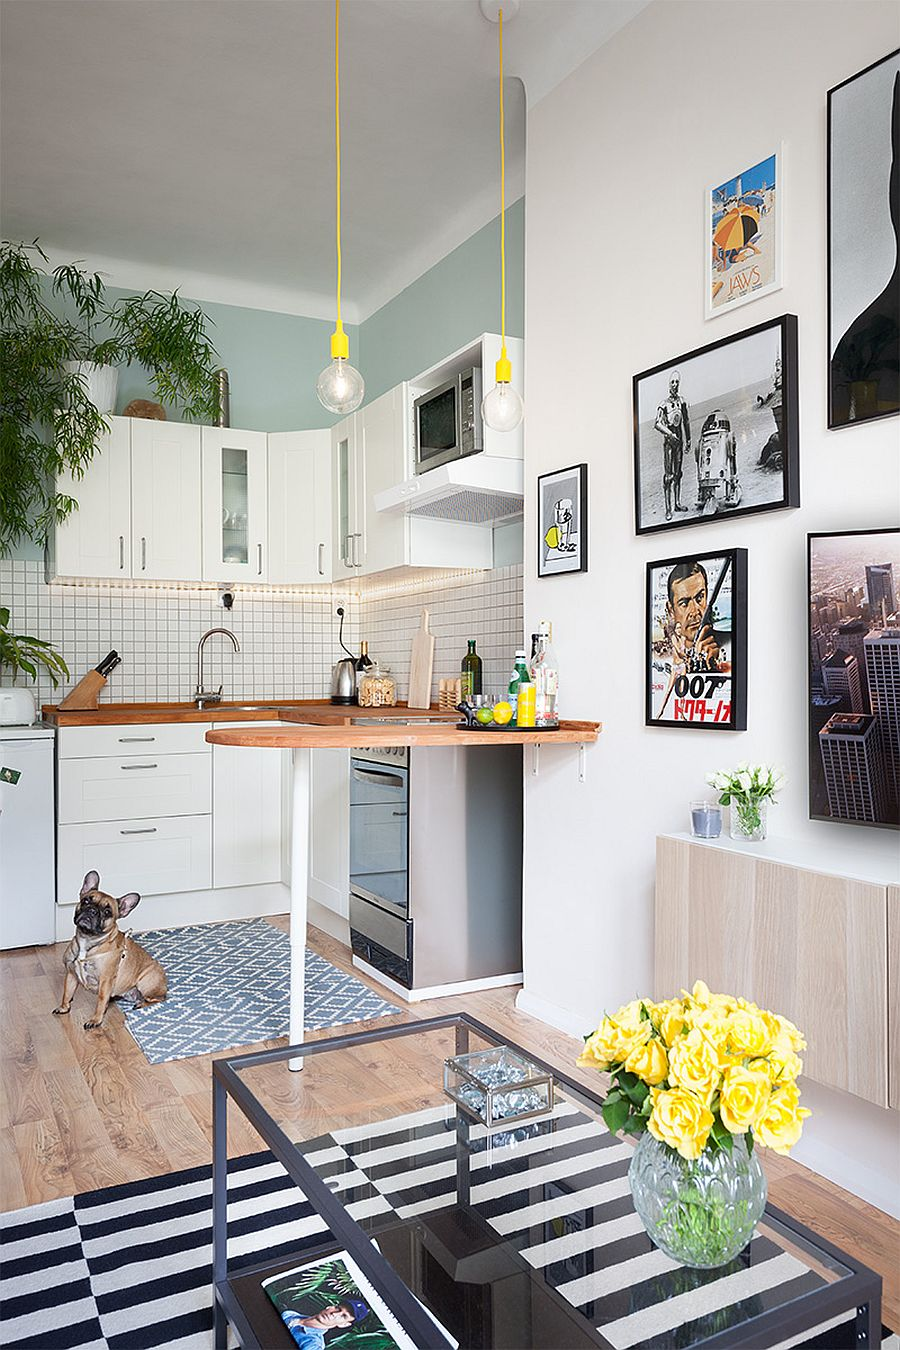 Tiny kitchen in white with pops of yellow to enliven it